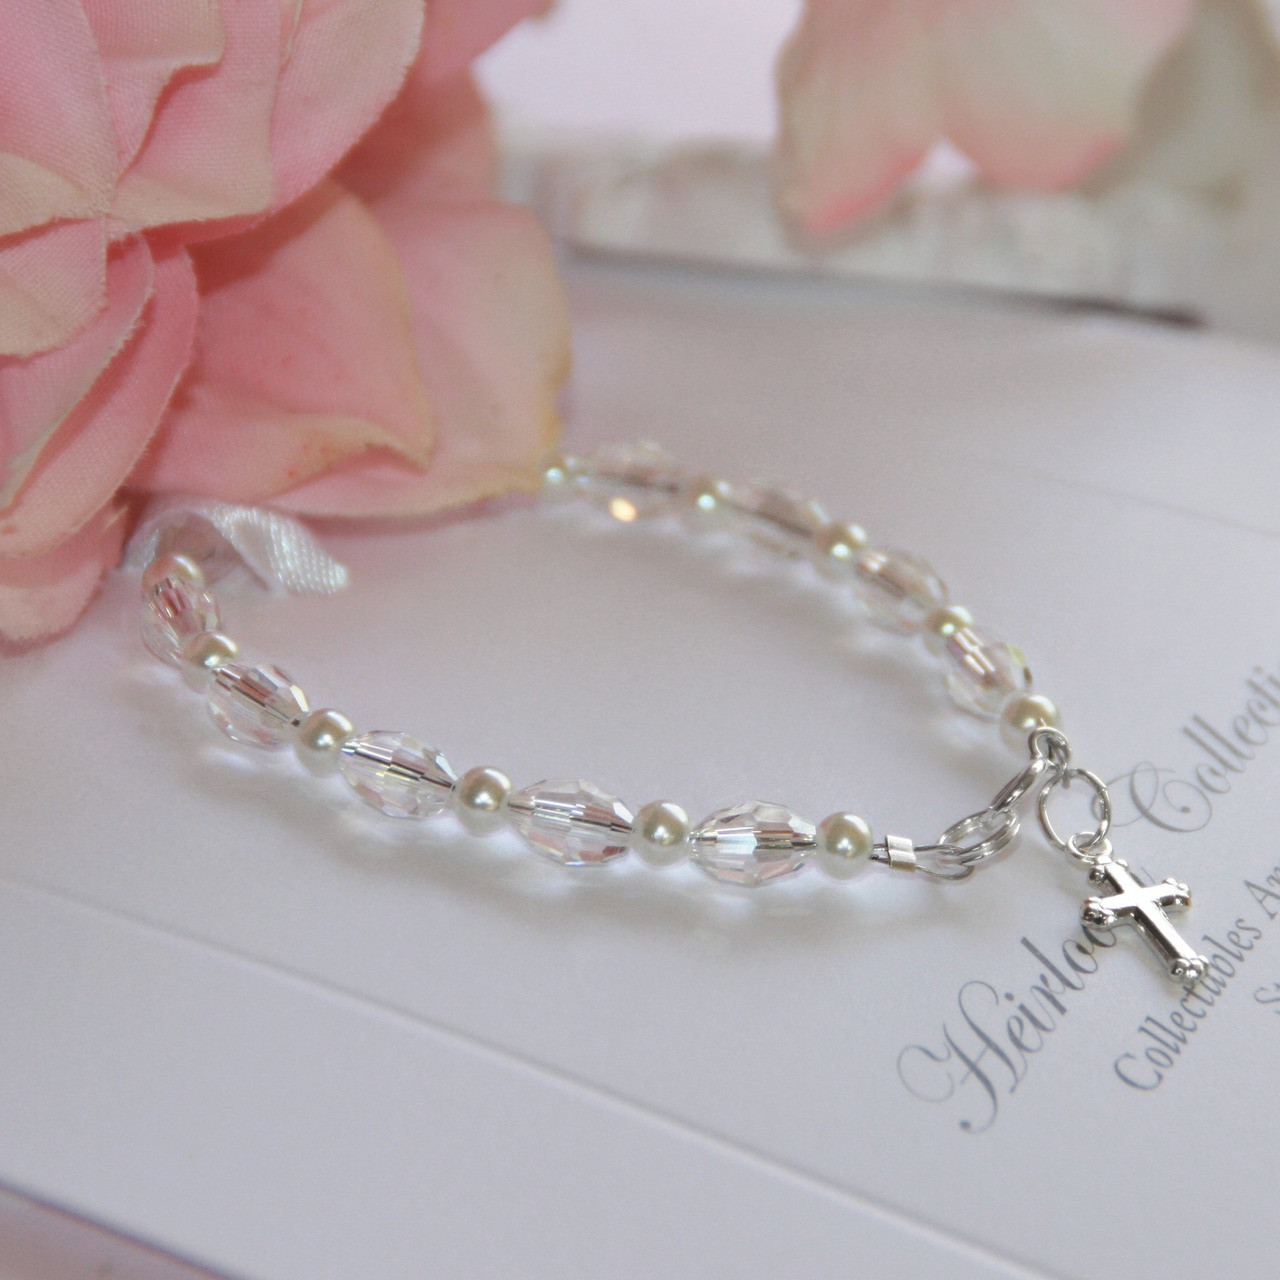 """STG-146CR Crystals and Pearls 5"""" a Favorite Bracelet! Sterling Silver"""